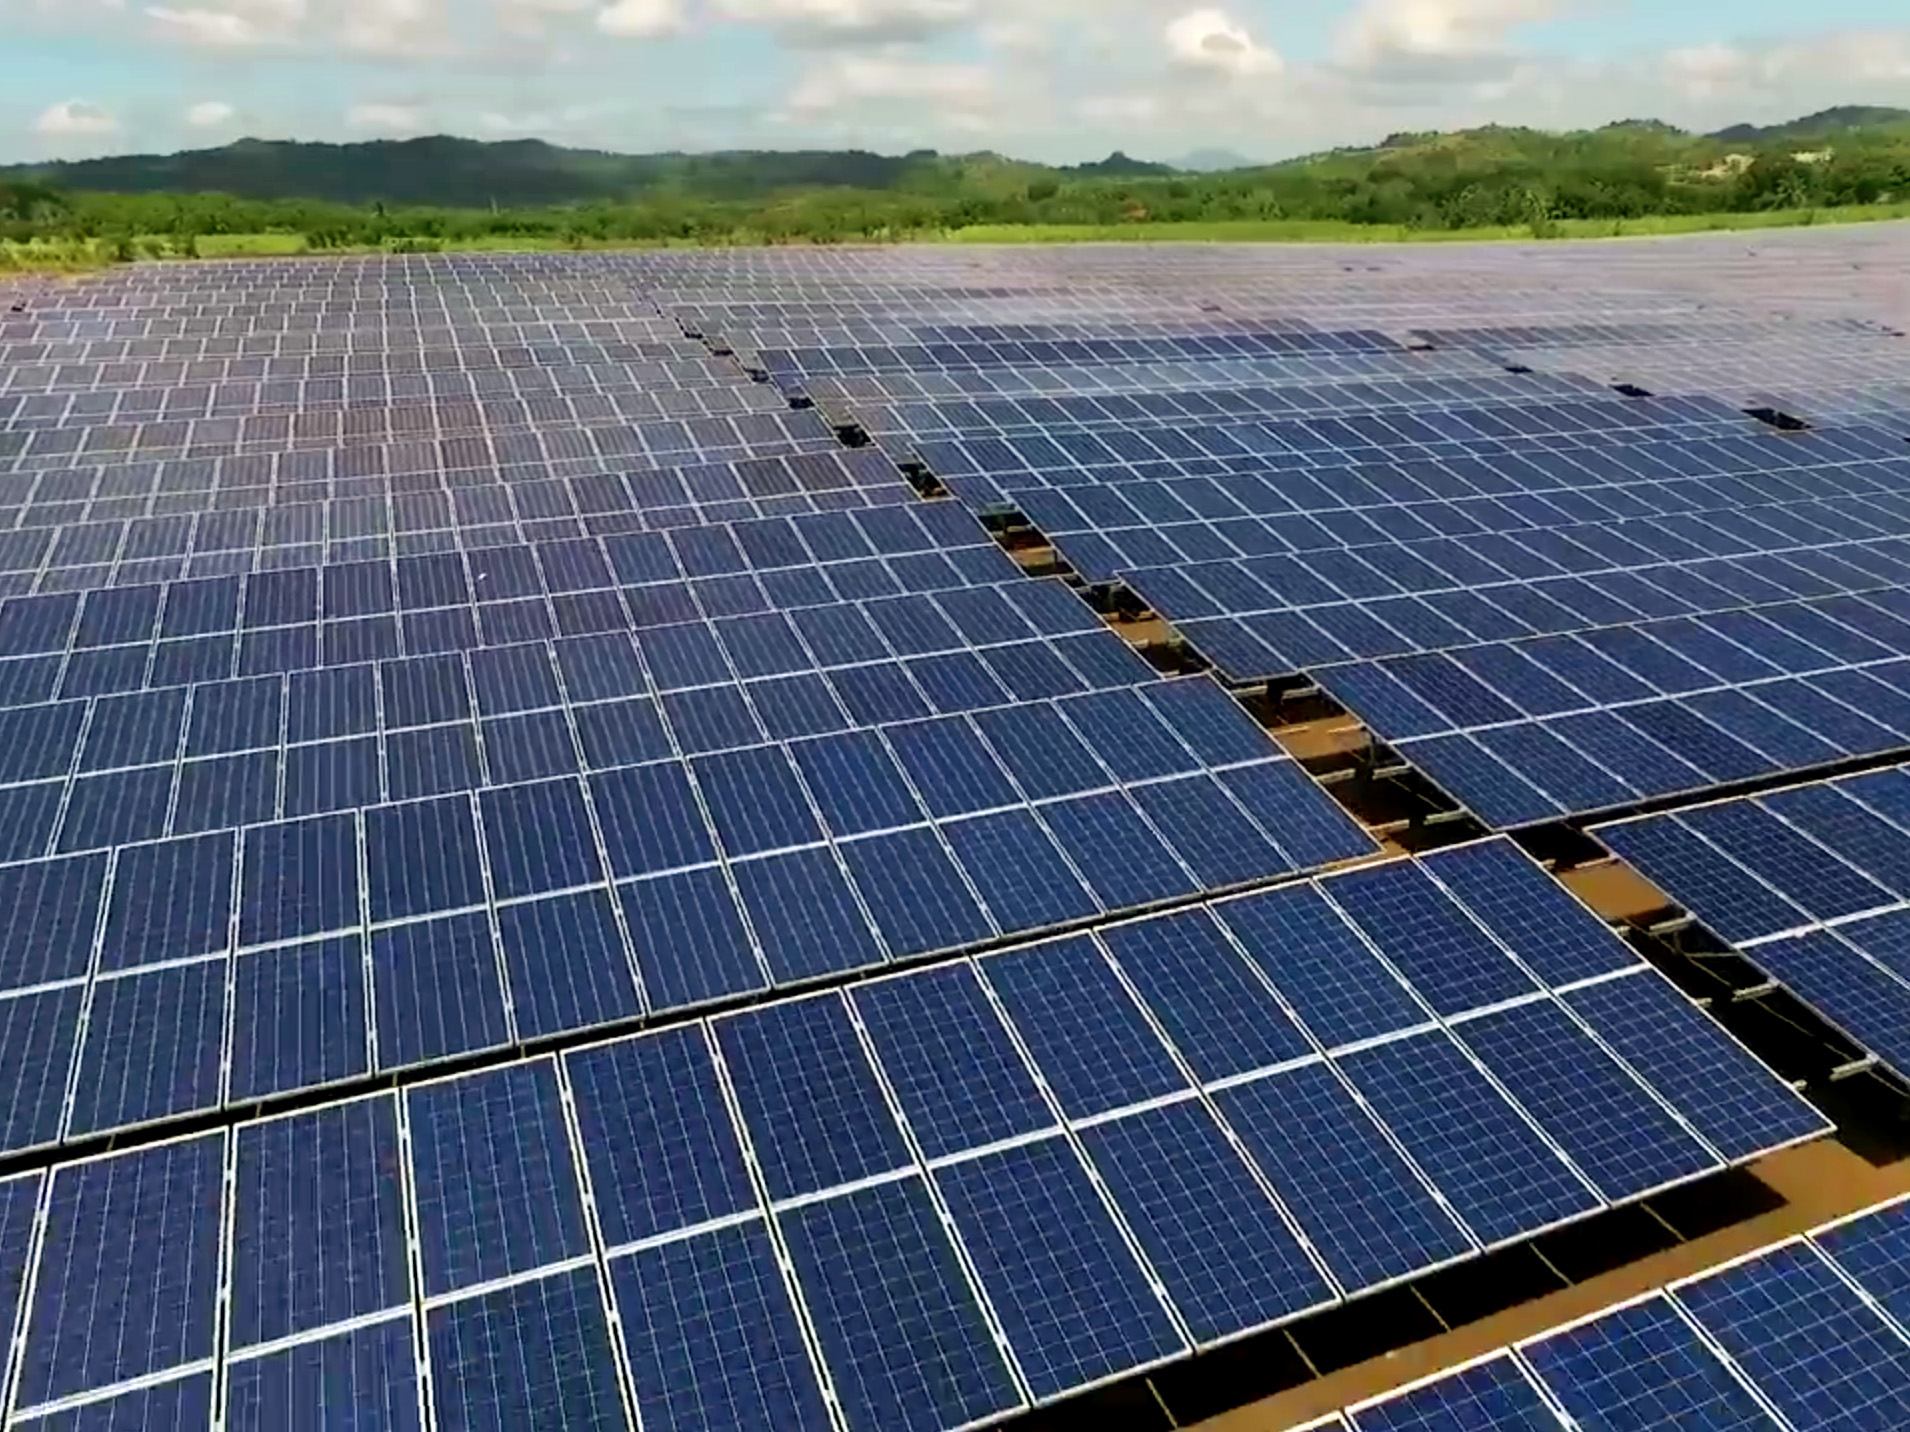 Leandro Leviste, CEO of Solar Philippines, noted that his company is willing to accept initially lower returns since it believes in India's massive long-term potential. Credit: Solar Philippines